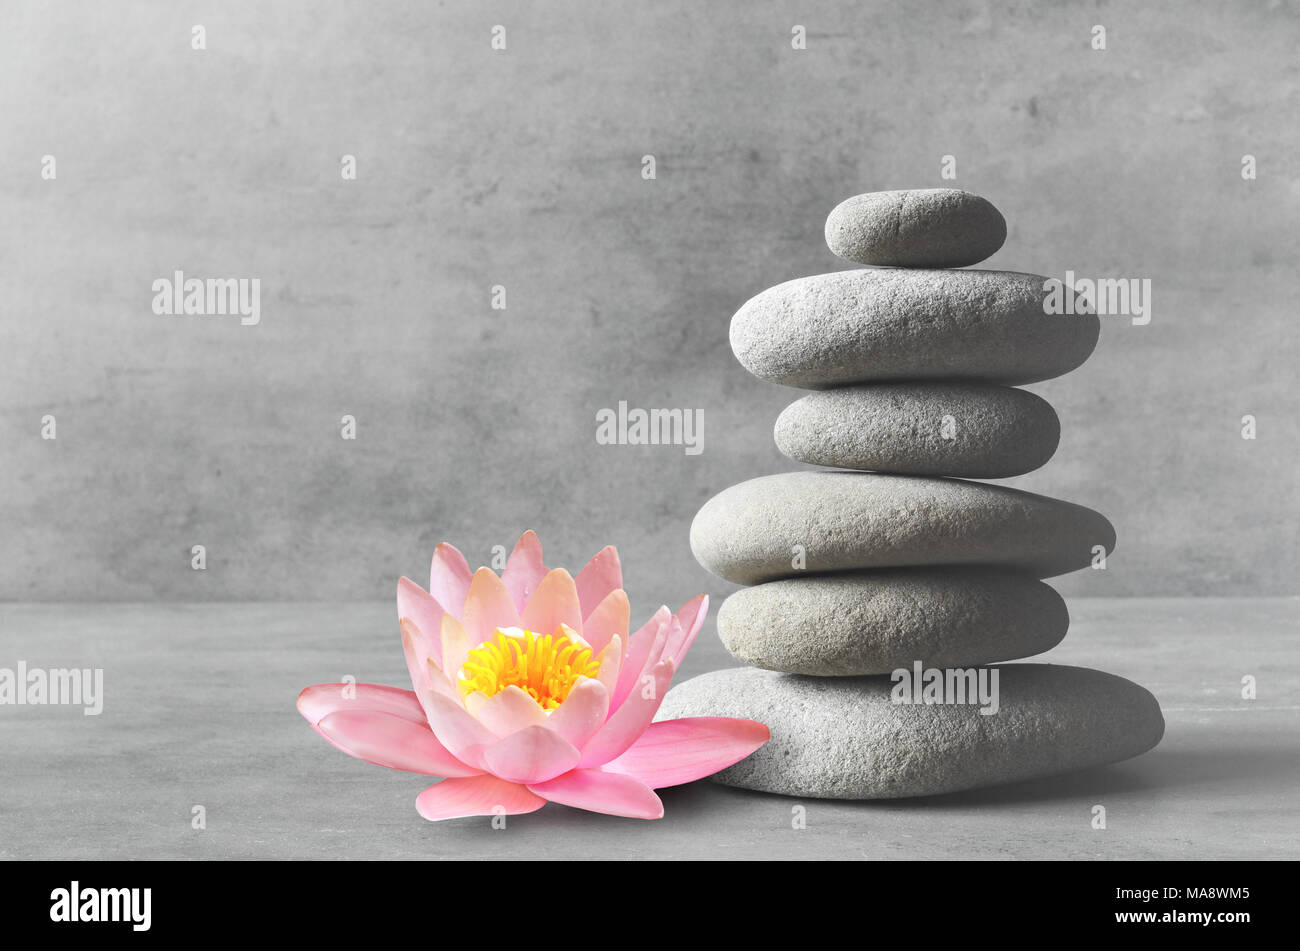 Stones and pink flower lotus balance zen and spa concept stock stones and pink flower lotus balance zen and spa concept izmirmasajfo